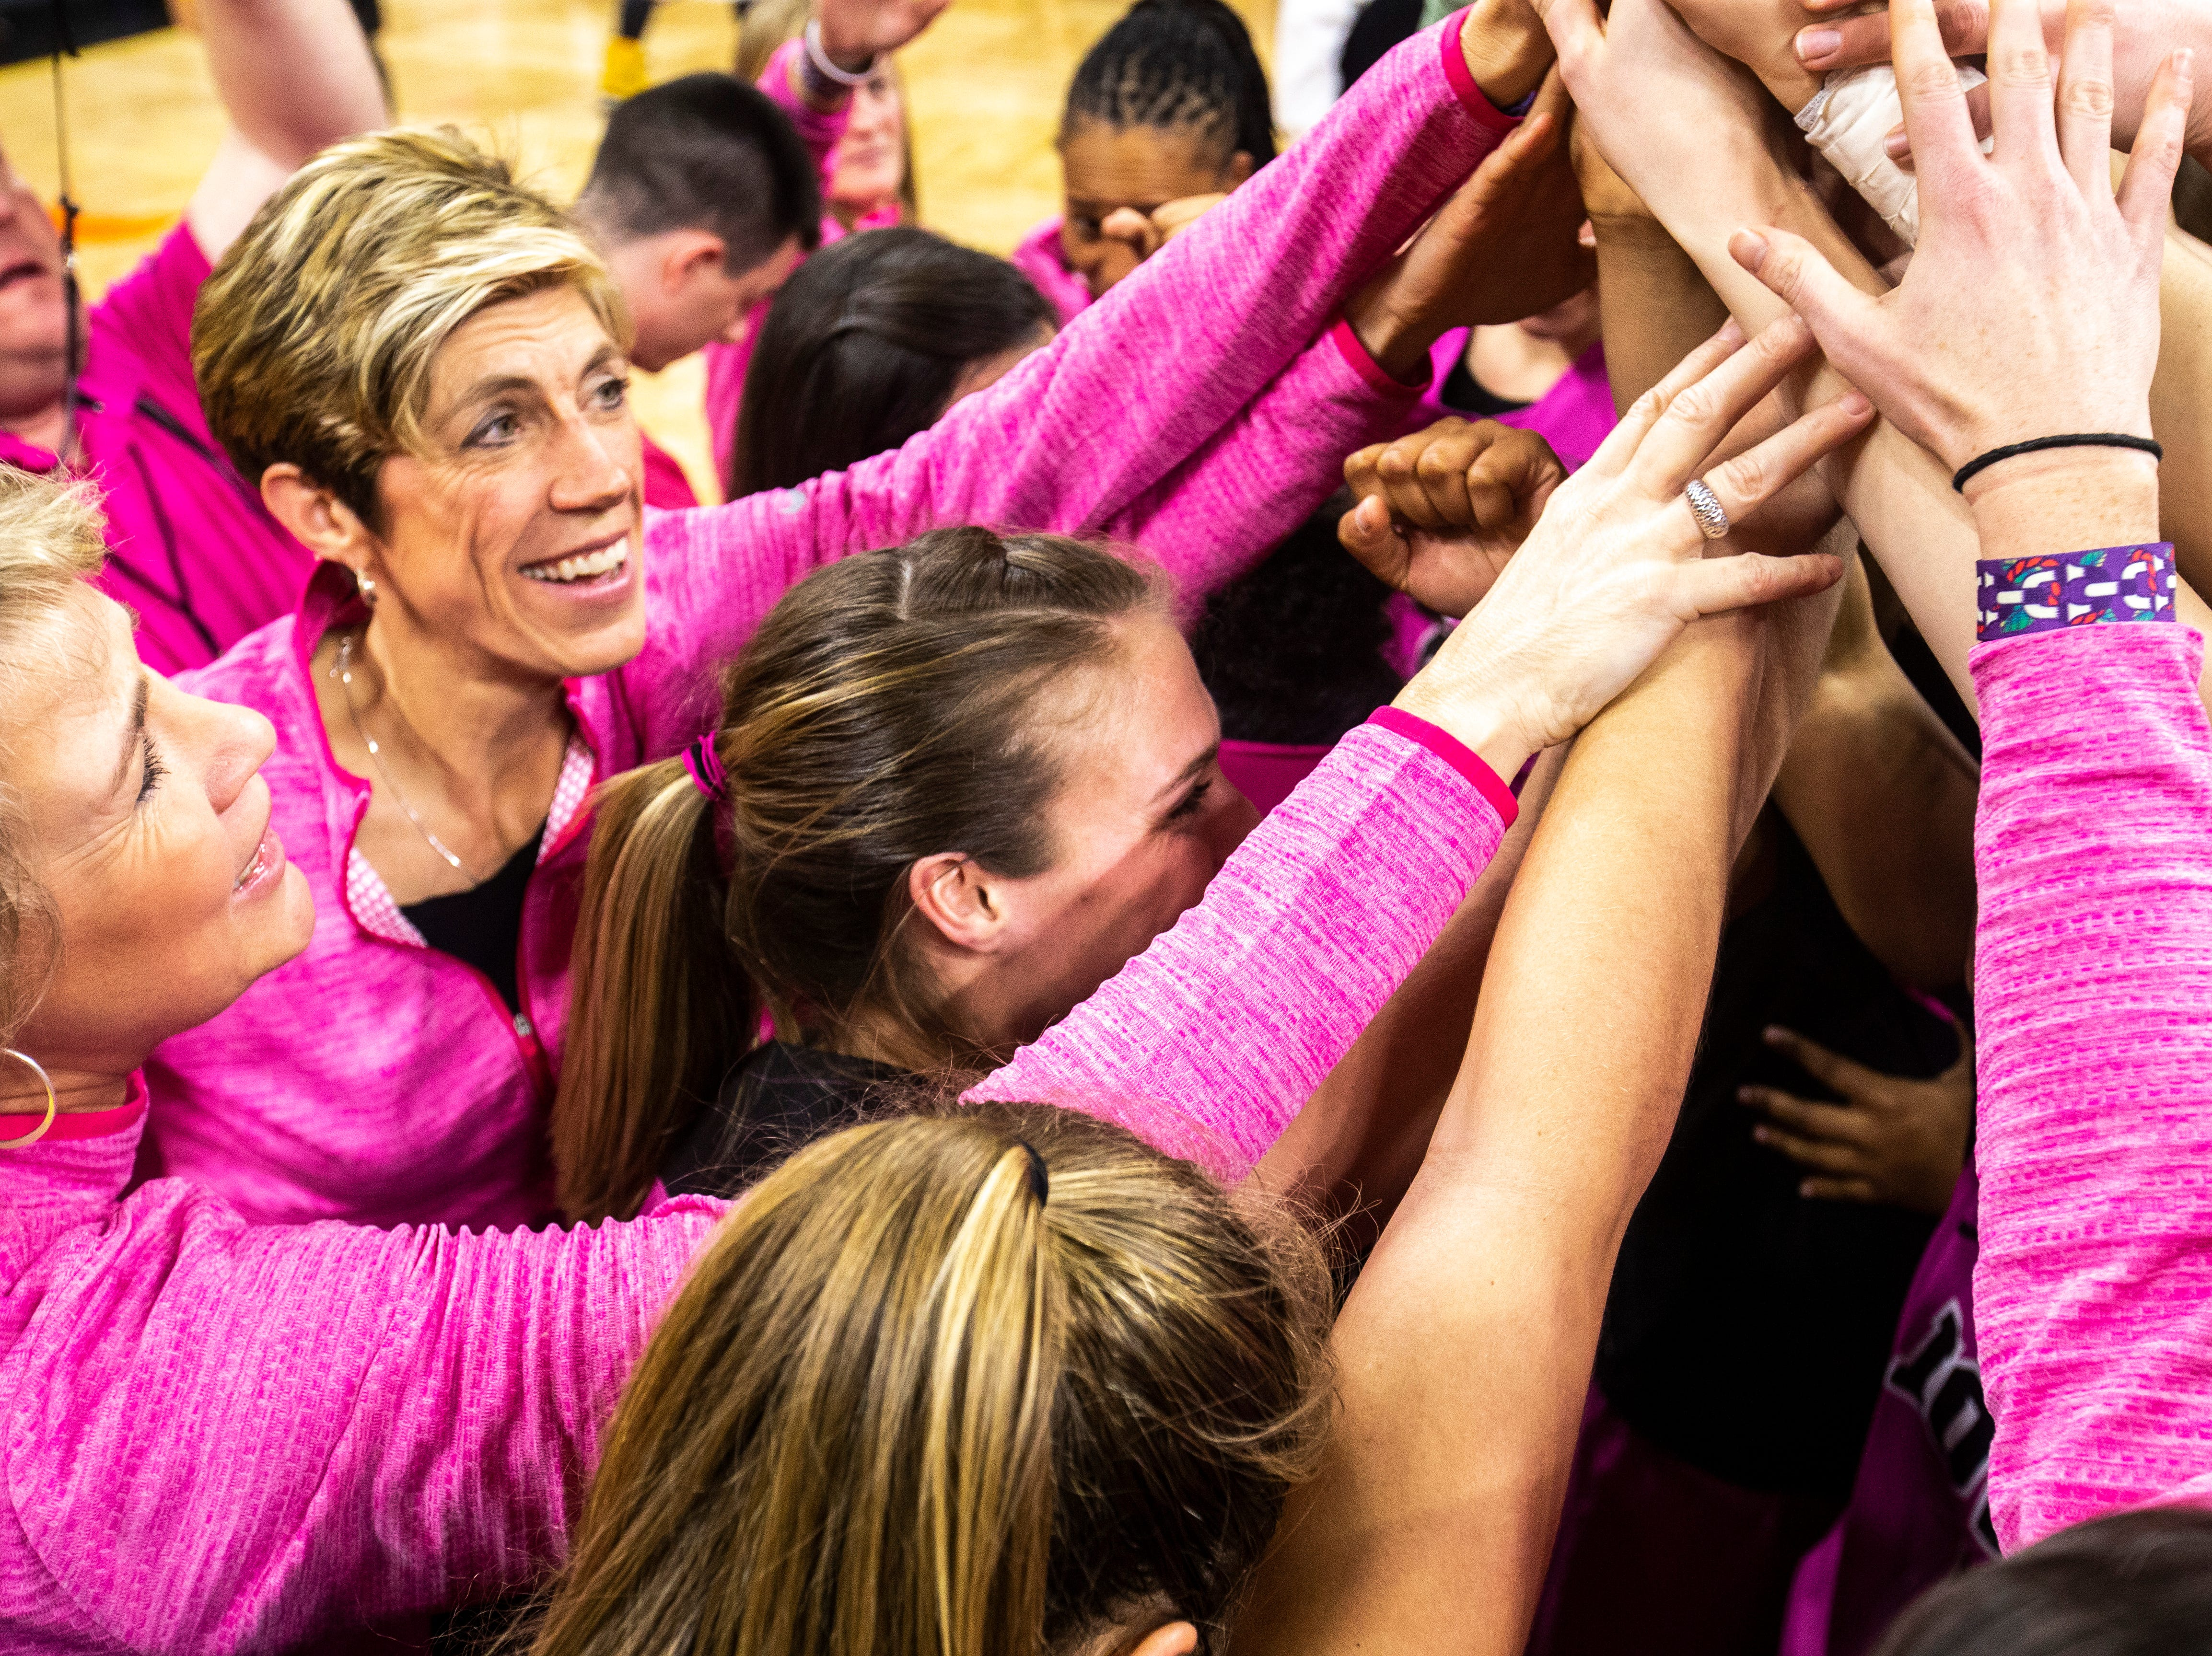 Iowa head coach Lisa Bluder and associate Jan Jensen huddle with players after a NCAA Big Ten Conference women's basketball game against Maryland on Sunday, Feb. 17, 2019 at Carver-Hawkeye Arena in Iowa City, Iowa.